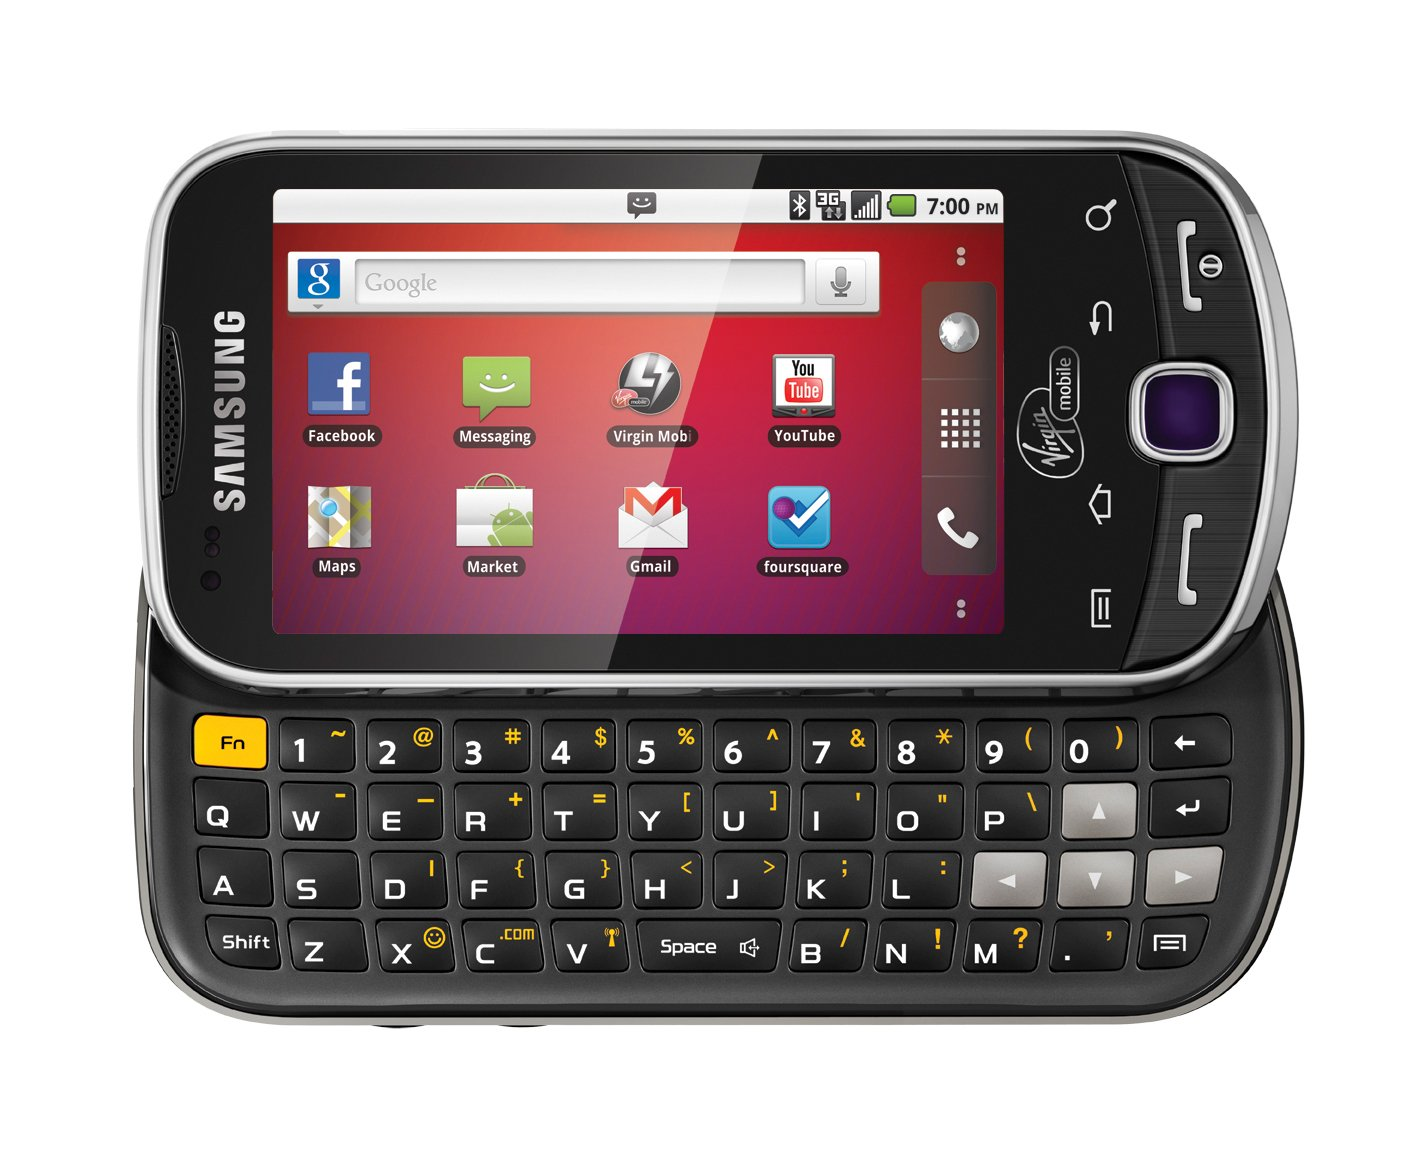 Samsung-Intercept-Prepaid-Android-Phone-Virgin-Mobile-